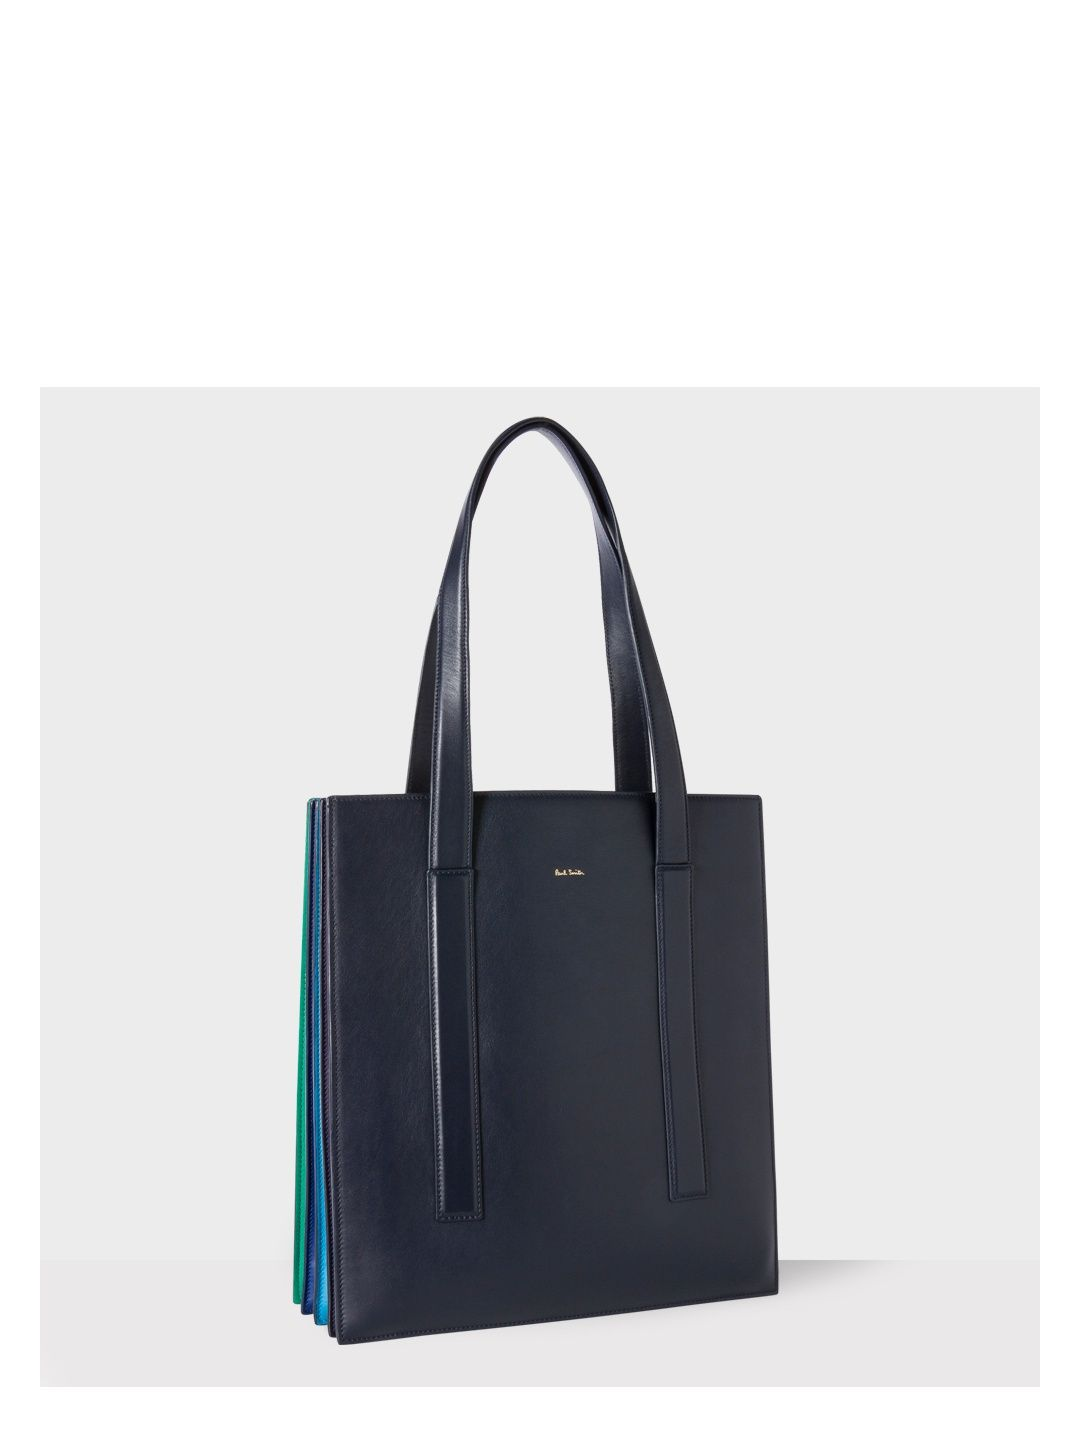 f9167438f4be32 Paul Smith Women s Navy  Concertina  Tote Bag Image 0